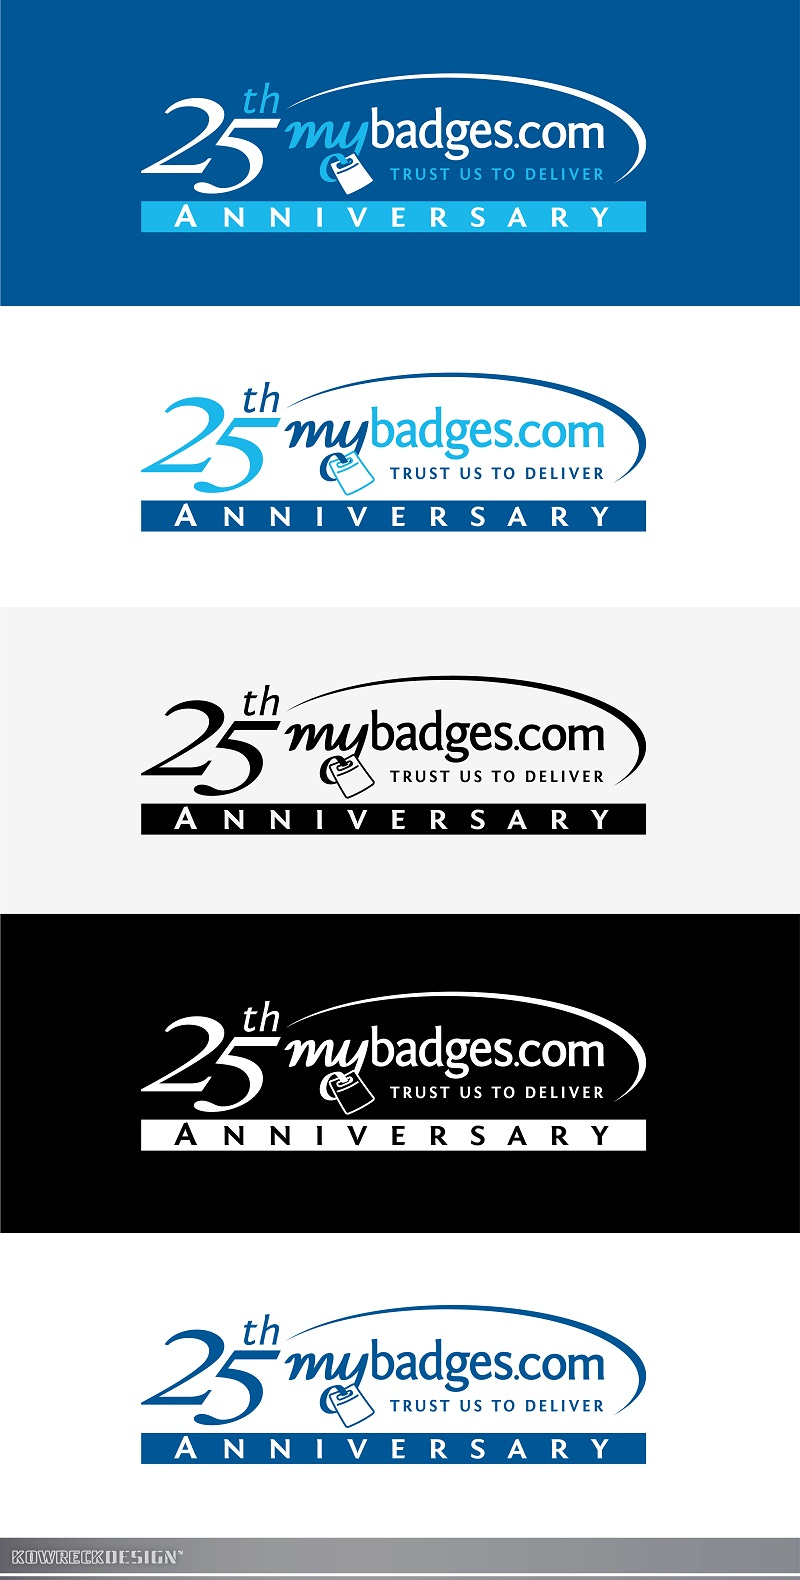 Logo Design by kowreck - Entry No. 148 in the Logo Design Contest 25th Anniversary Logo Design Wanted for MyBadges.com.